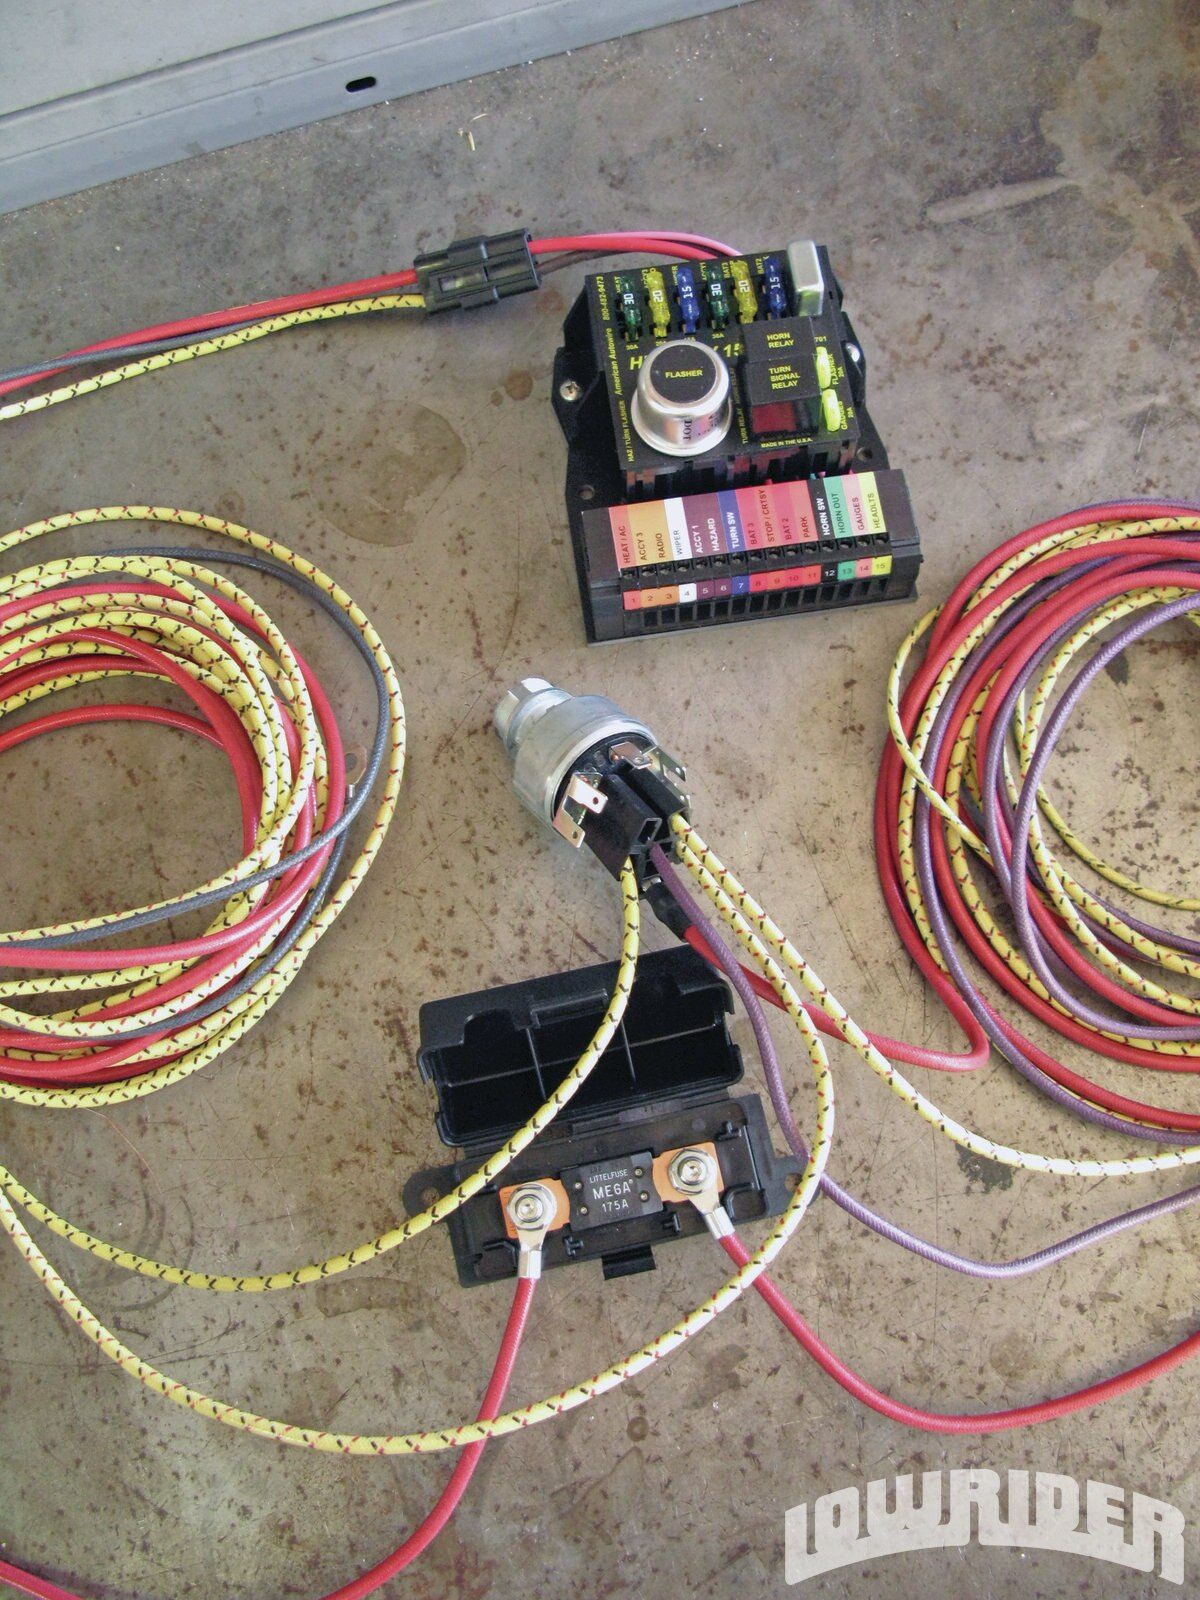 1304 lrmp 02 o american autowire highway 15 wiring wiring american autowire highway 15 nostalgia wiring kit lowrider magazine highway 22 wiring diagram at edmiracle.co